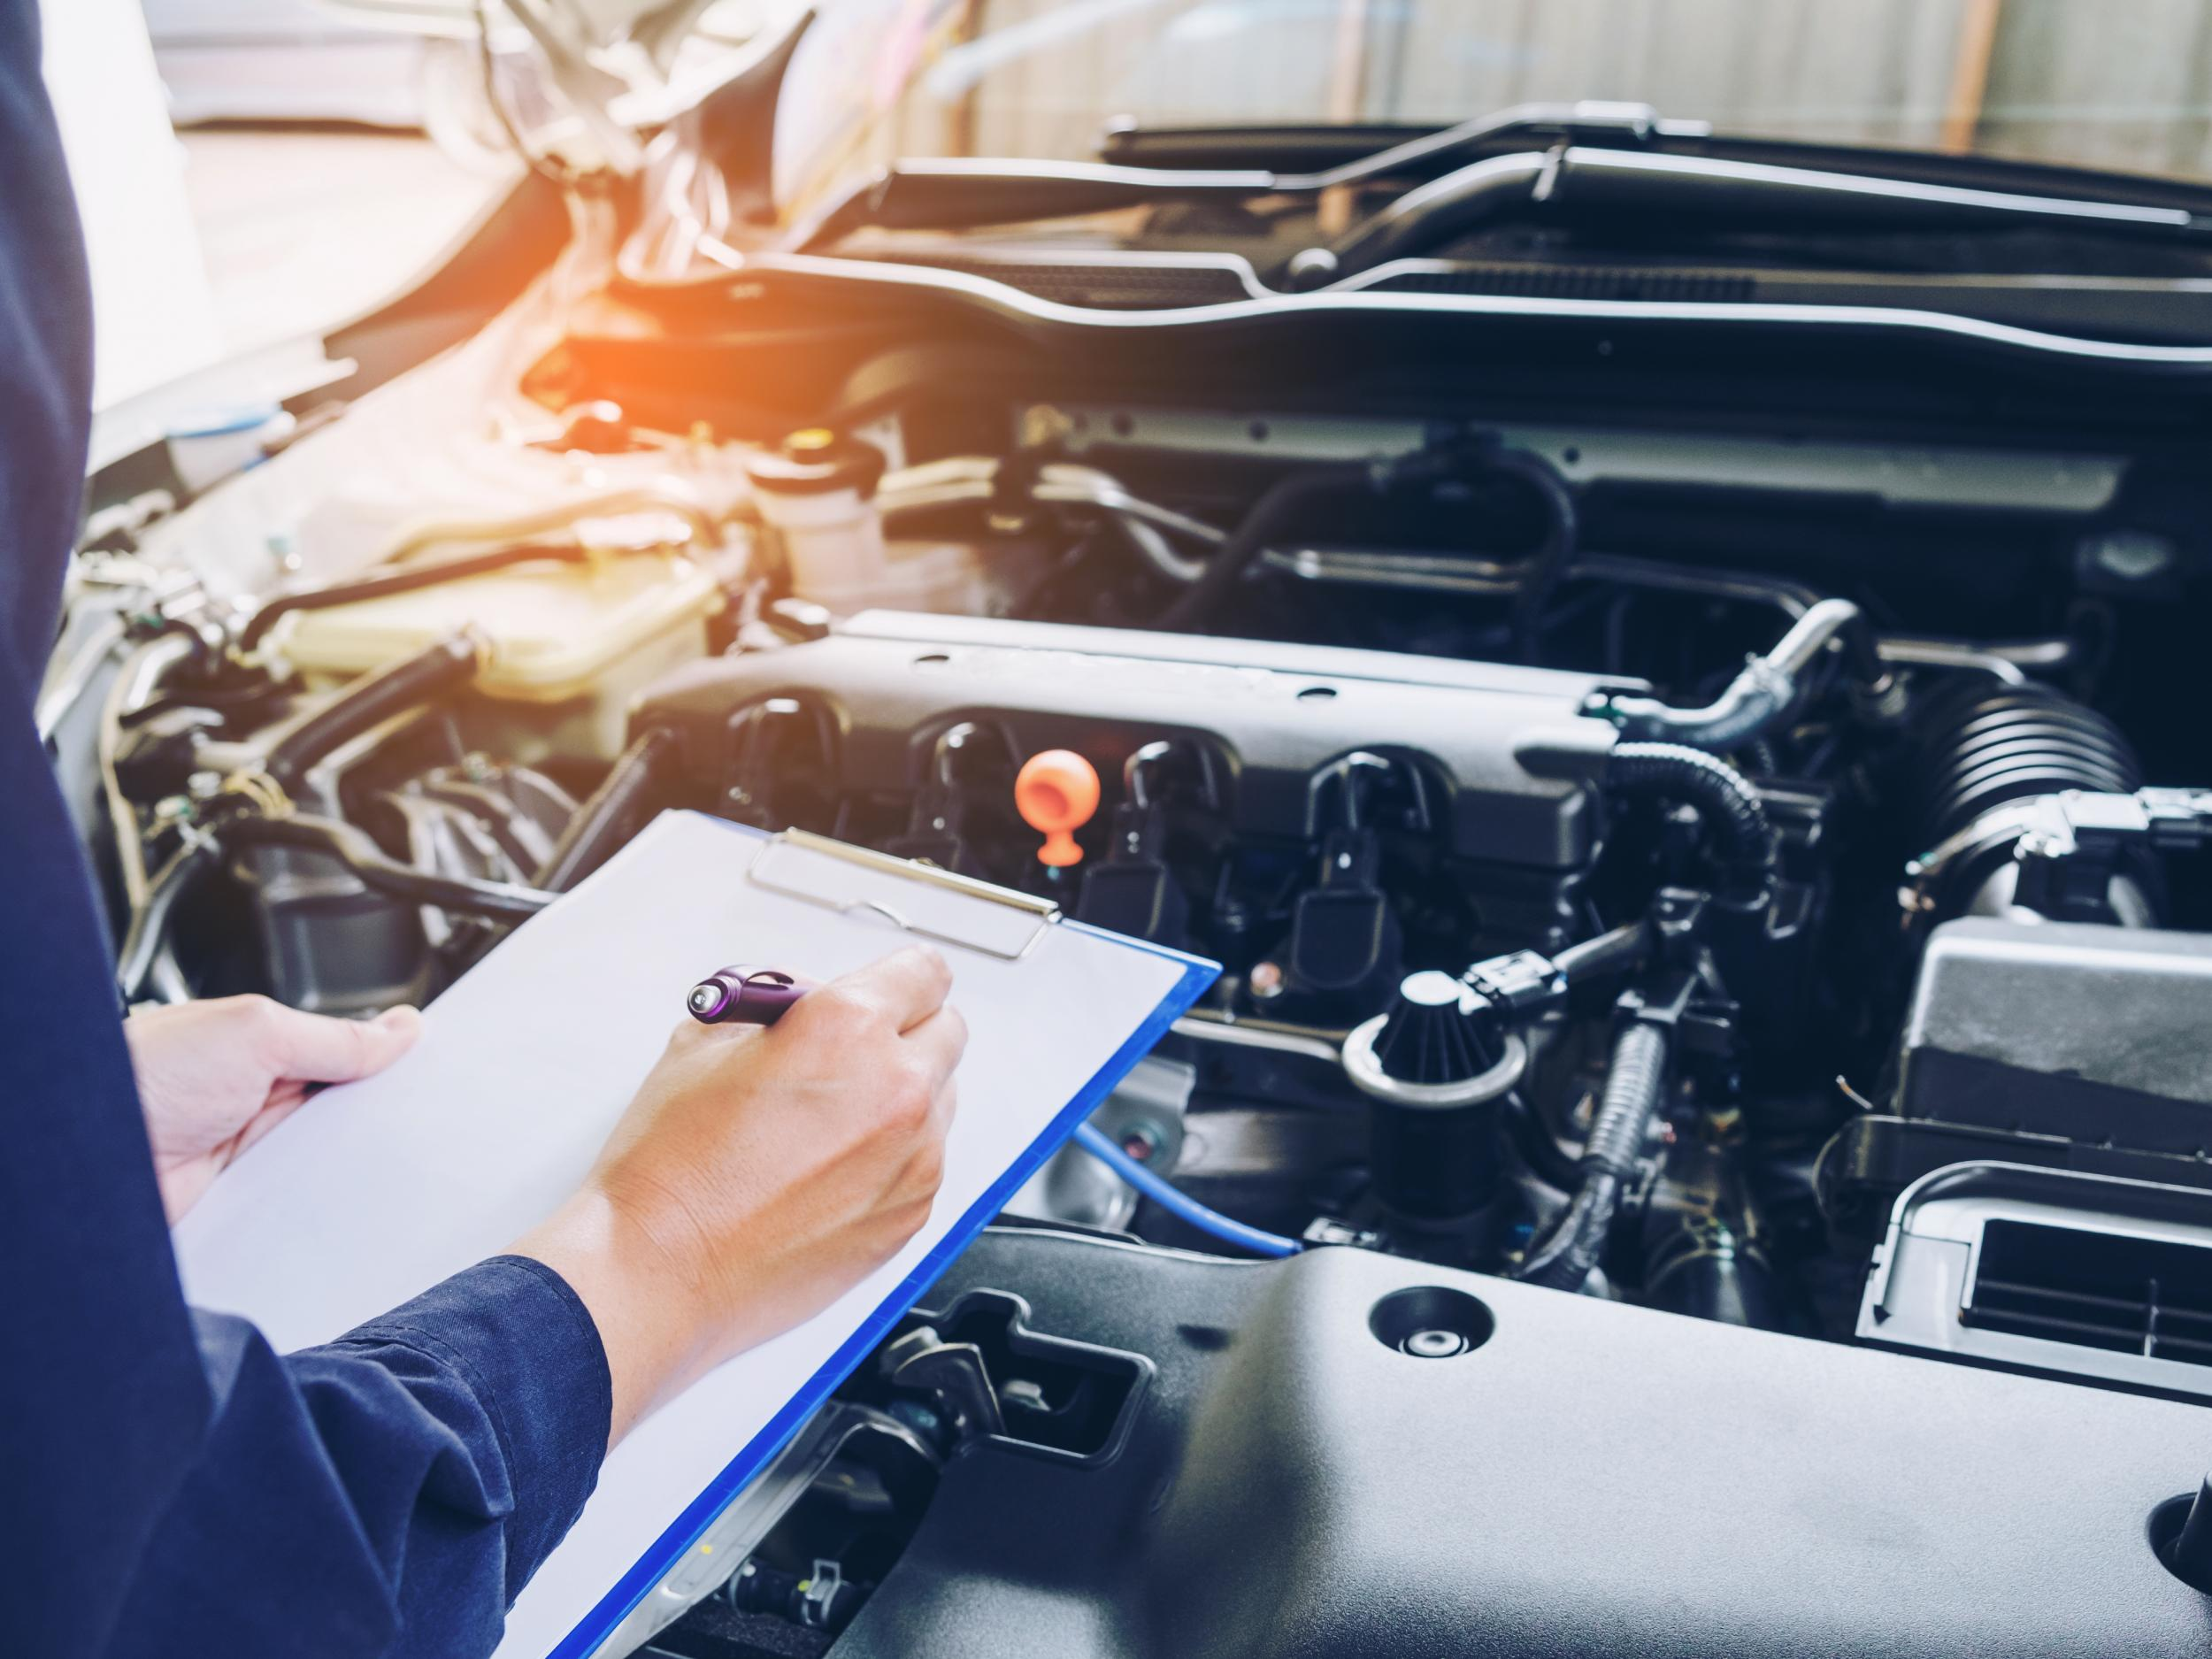 MOT tests - latest news, breaking stories and comment - The Independent